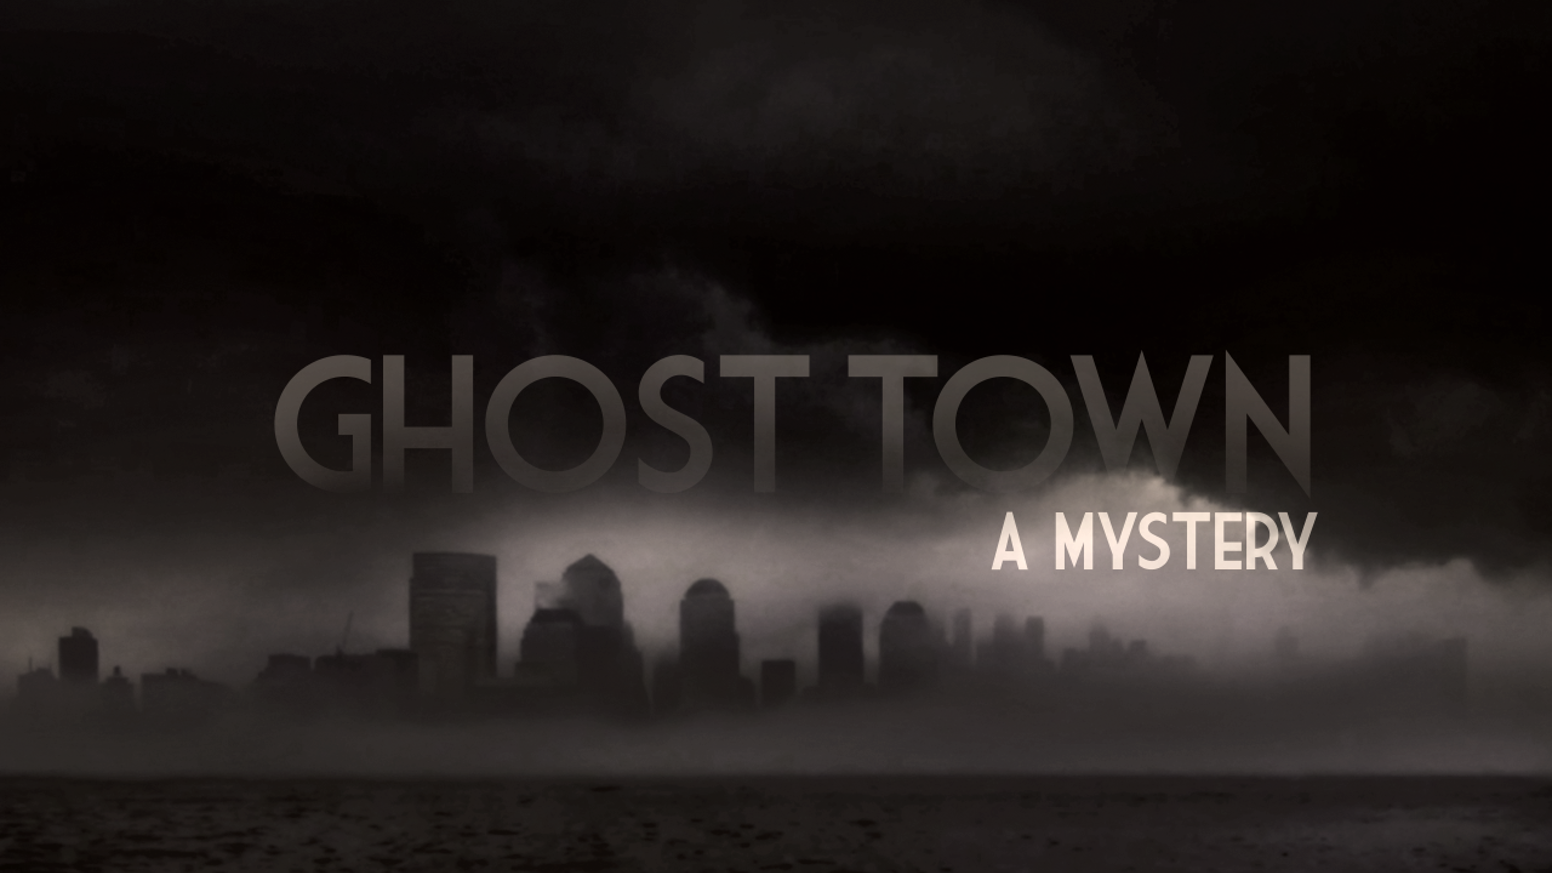 Ghost Town: A Mystery is the 1st book in the Ghost Town series. It tells the story of Arthur and his mission to Treble City.